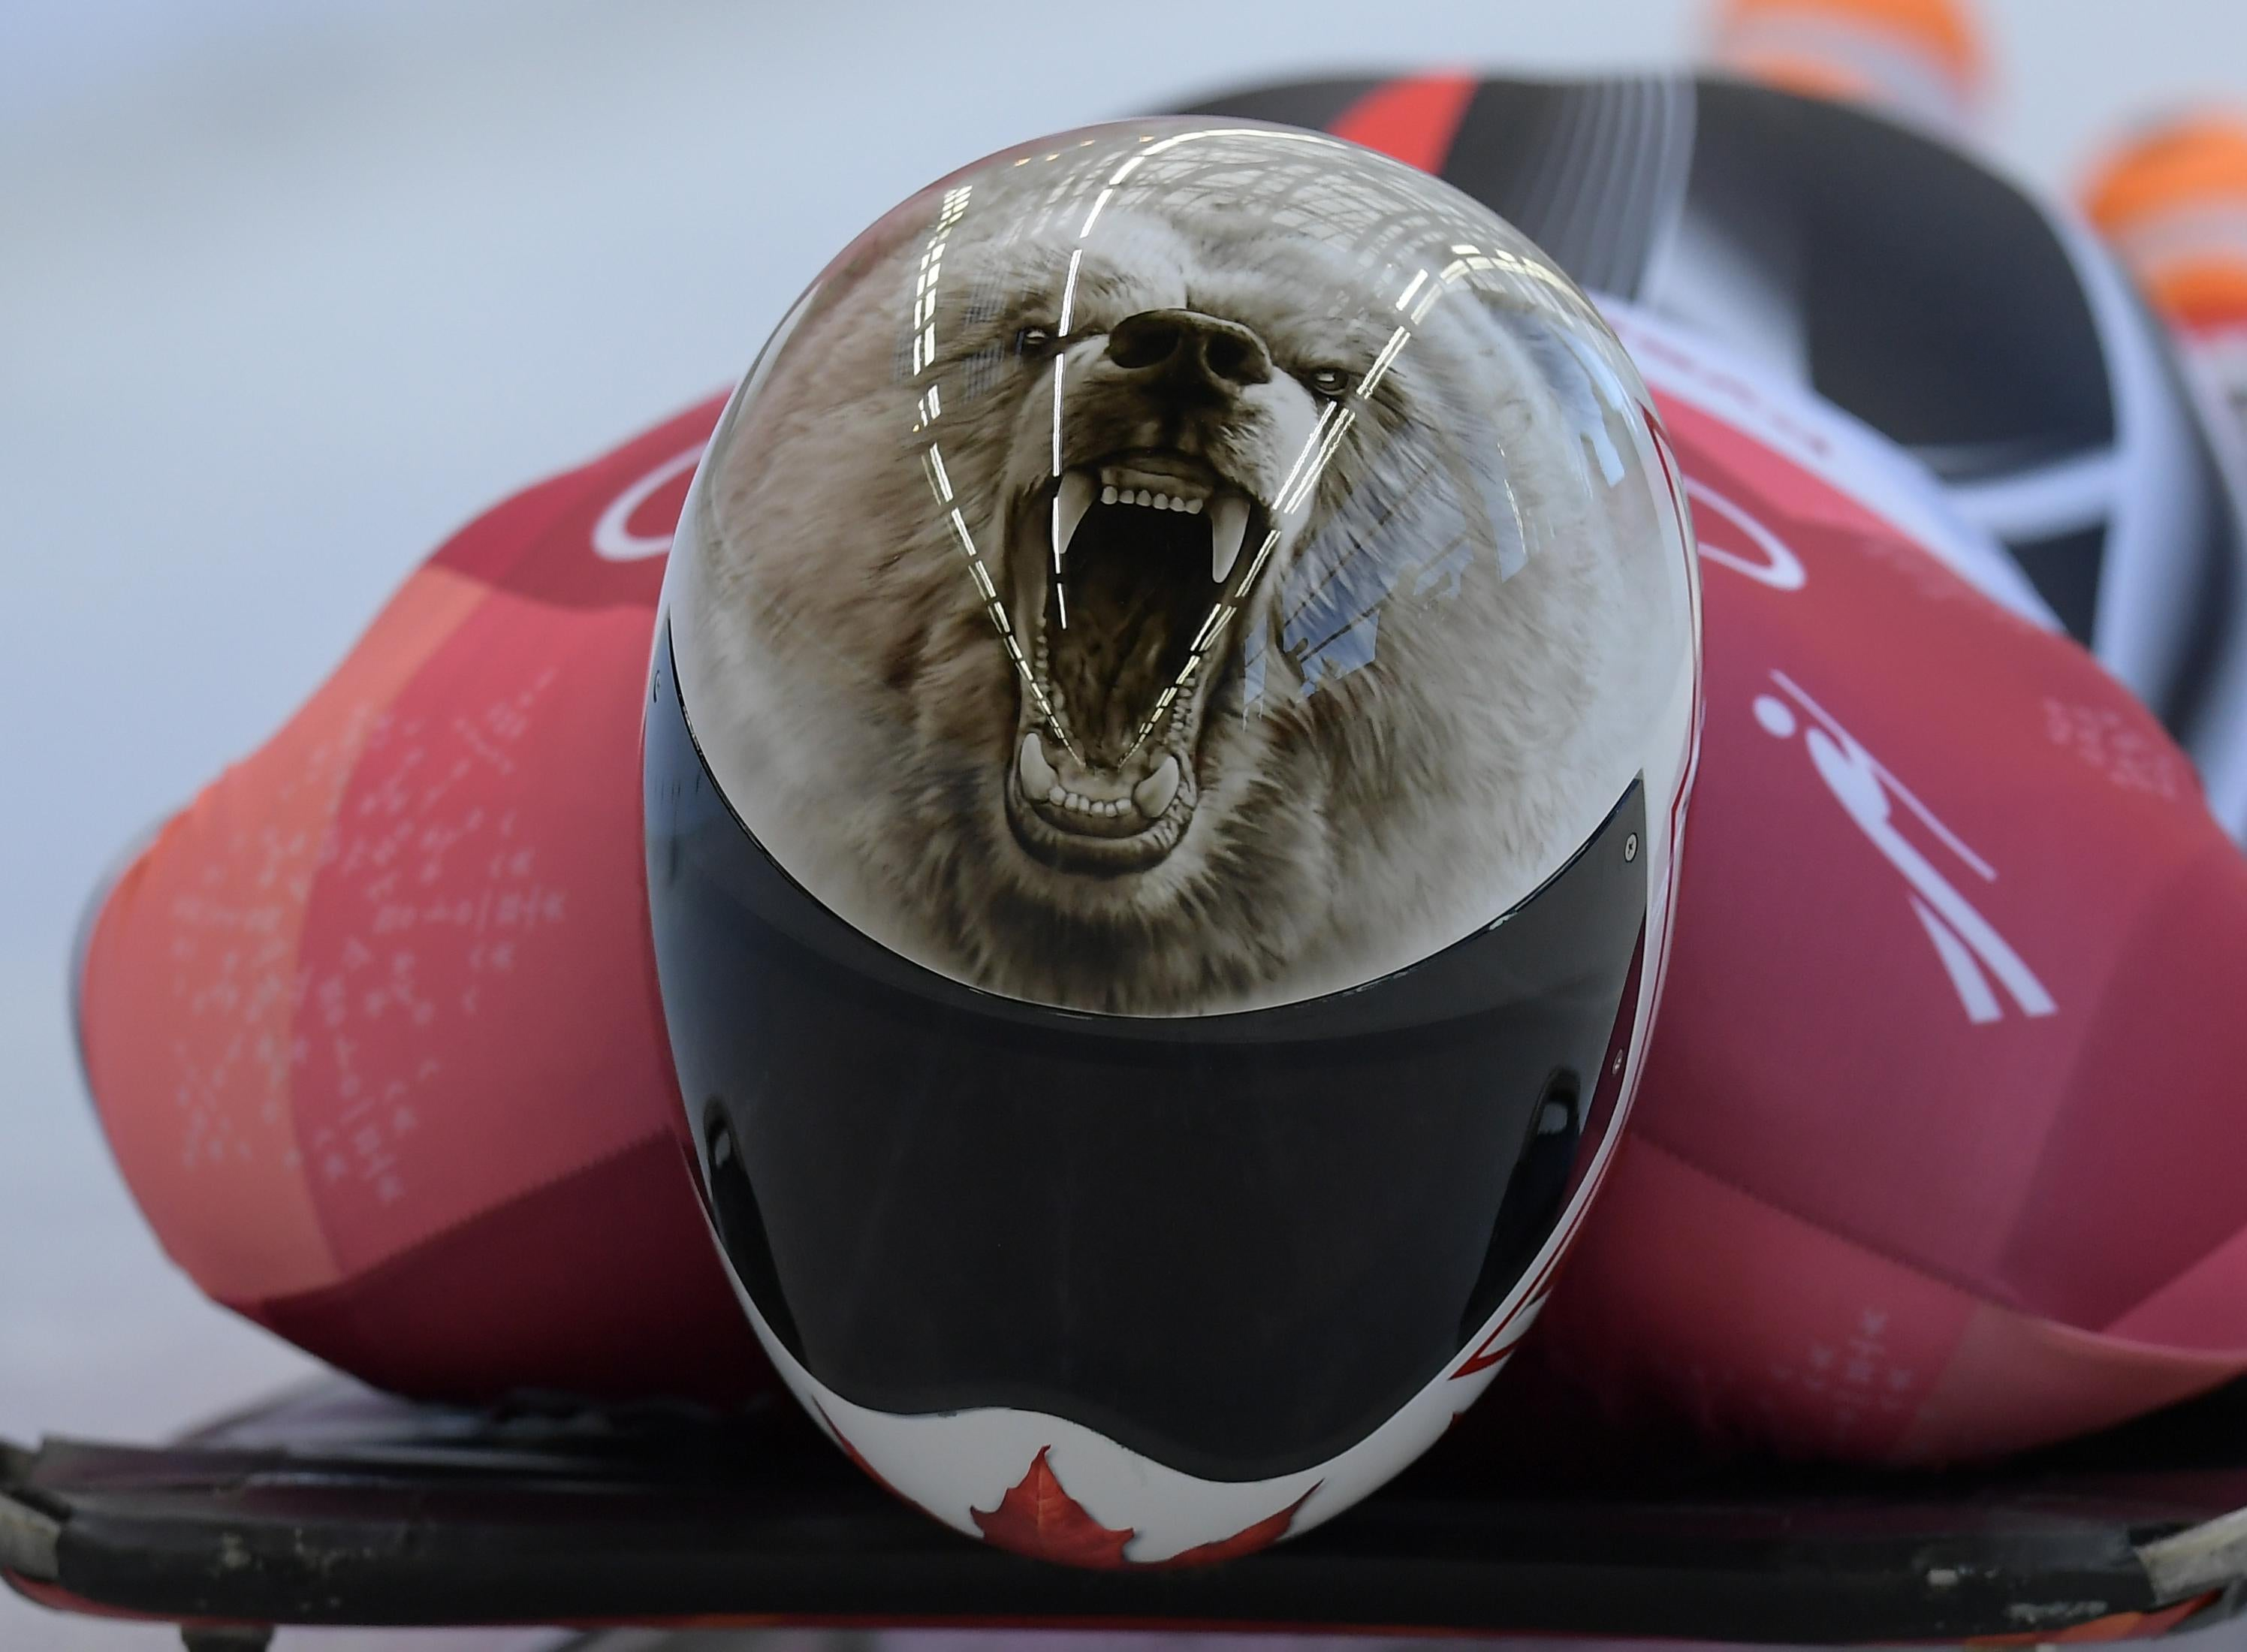 Canada's Barrett Martineau competes in the mens's skeleton heat 1 during the Pyeongchang 2018 Winter Olympic Games, at the Olympic Sliding Centre on February 15, 2018 in Pyeongchang.  / AFP PHOTO / MOHD RASFAN        (Photo credit should read MOHD RASFAN/AFP/Getty Images)